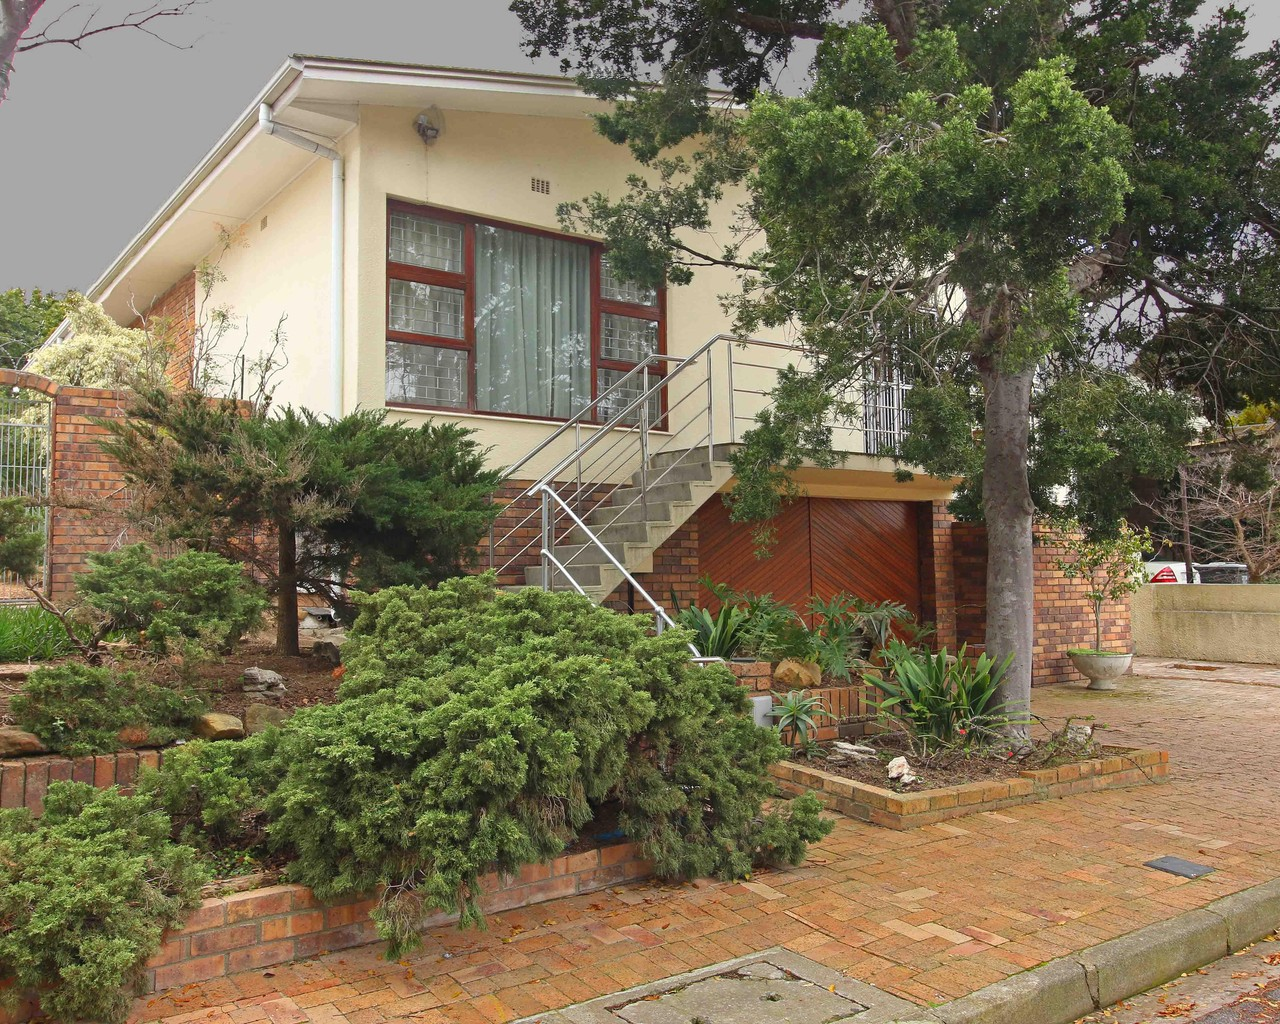 4 bedroom house to let in boston louw and coetzee properties - What size fan should i get for my bedroom ...